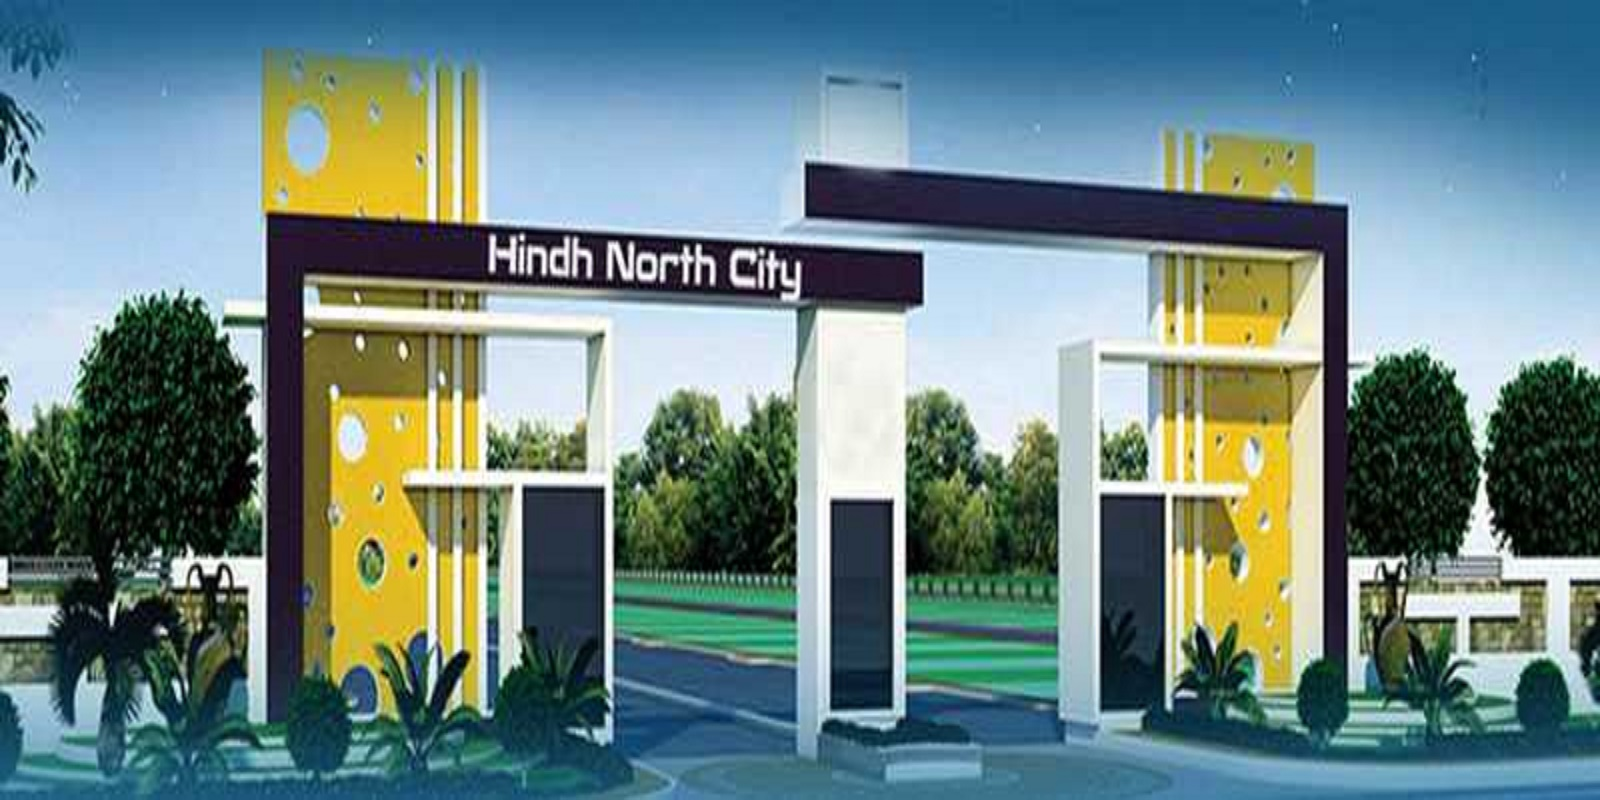 hindh north city project project large image1